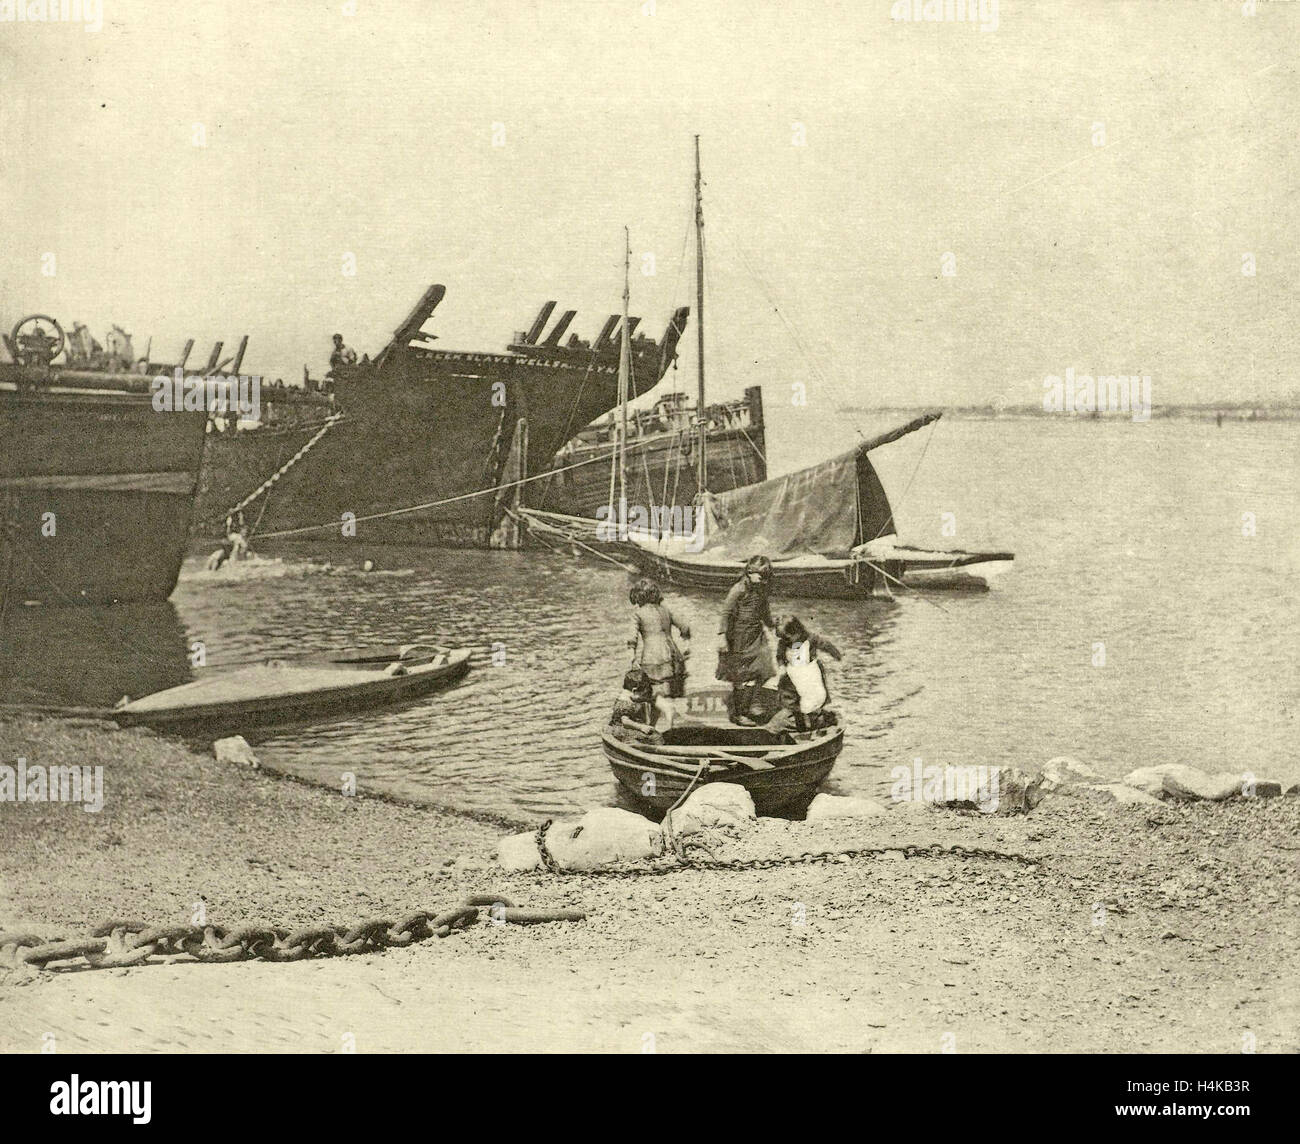 dismantled ships, attributed to Peter Henry Emerson, 1887 - 1890 - Stock Image